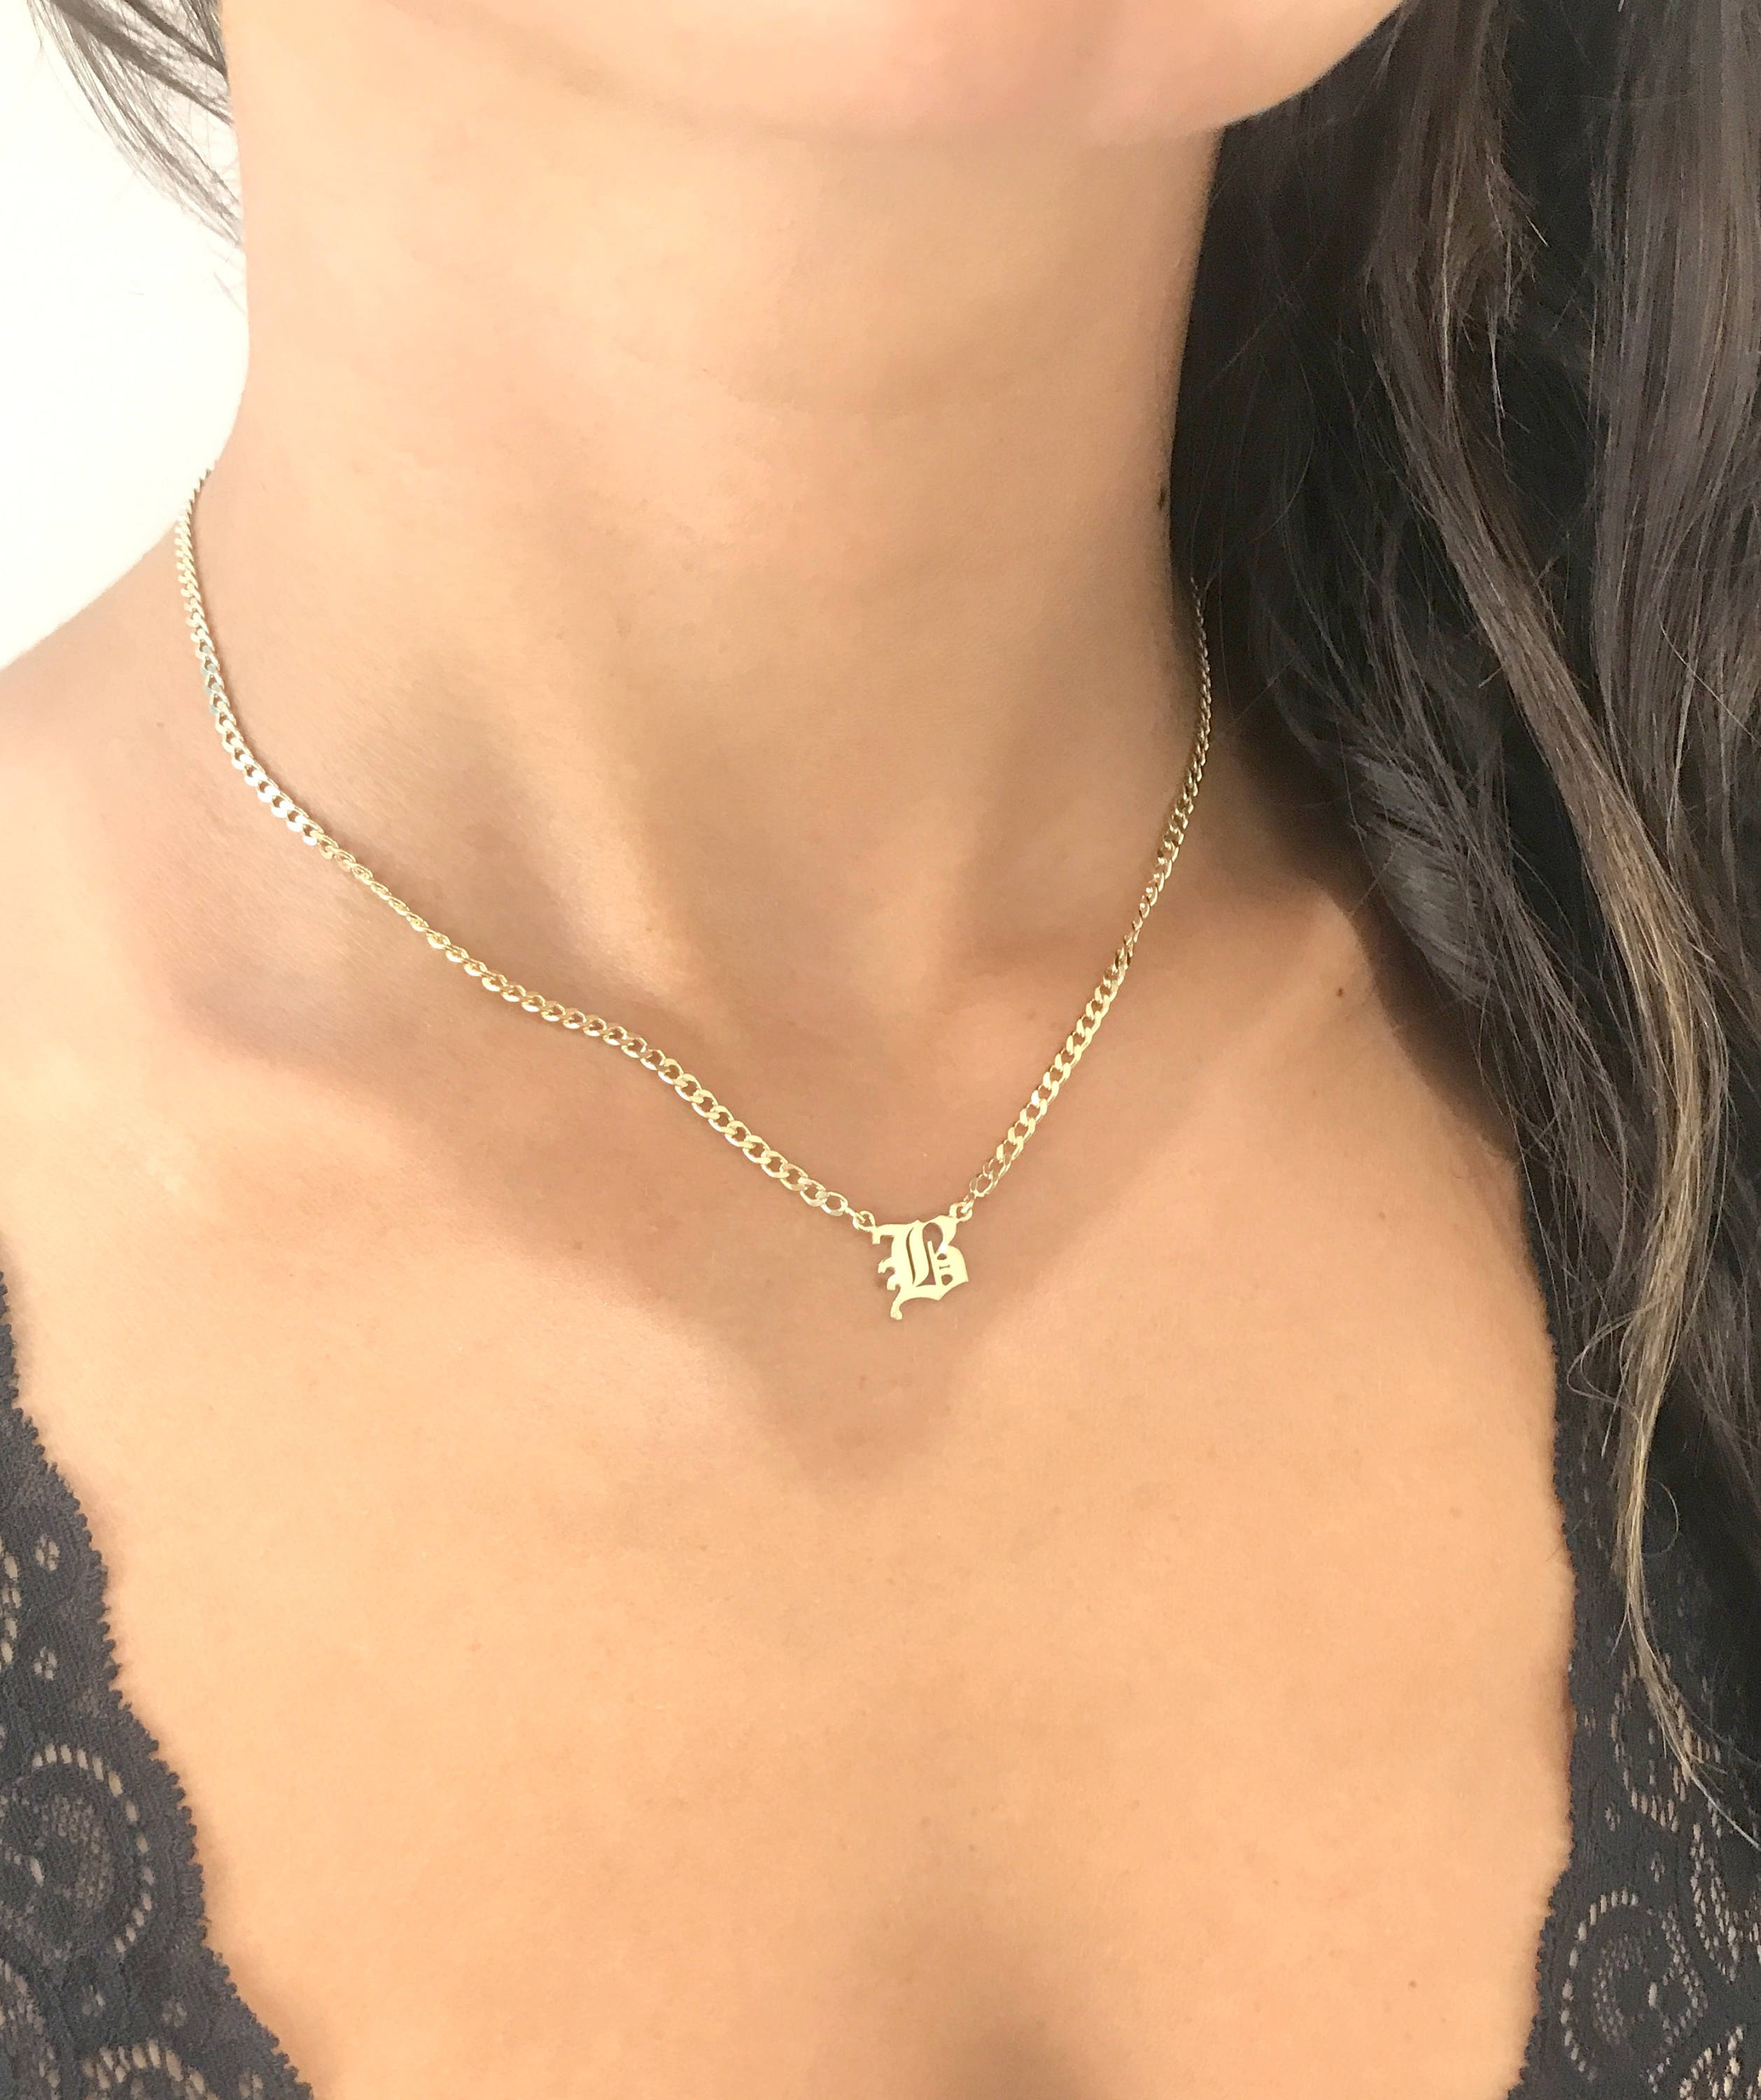 Old English Initial Necklace – Dainty Initial Necklace – Curb Chain Necklace – Personalized Necklace – Gothic Initial Necklace – Mother Gift With Most Current Curb Chain Necklaces (View 7 of 25)